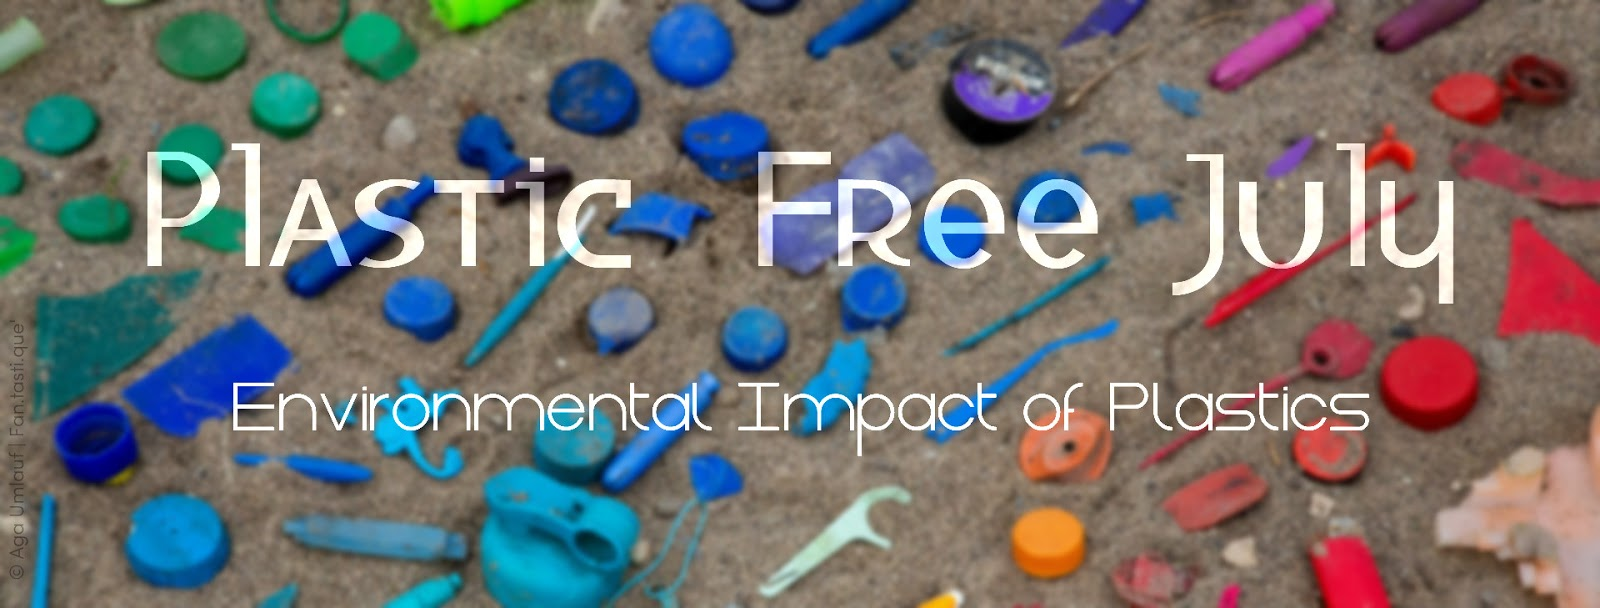 Photo of colorful plastic waste on a sandy beach with the title of the post written in white on it (Plastic Free July - Environmental Impact of Plastics)